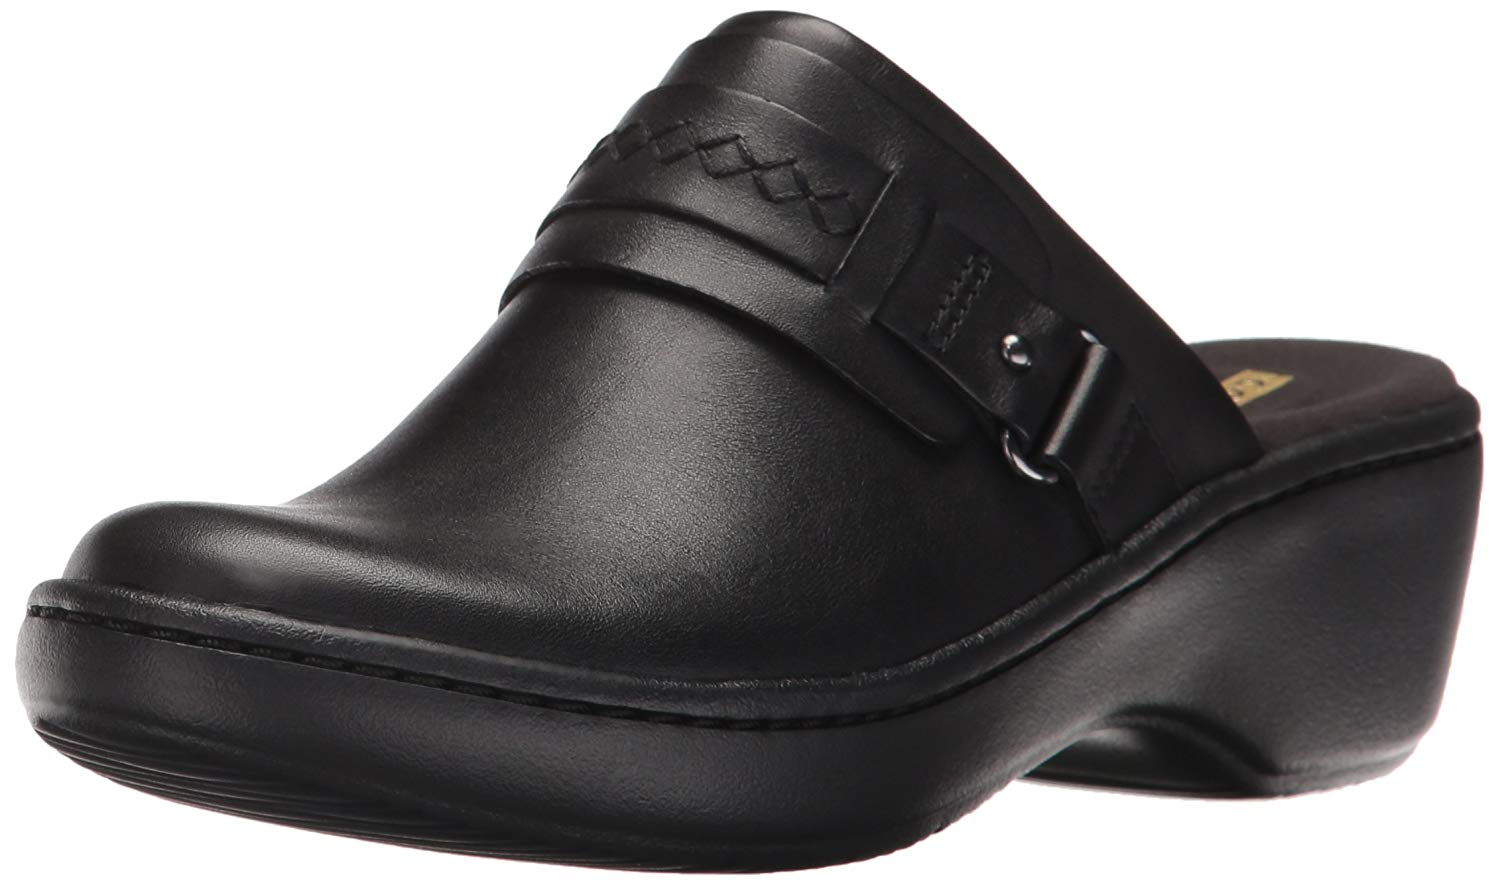 Clarks Womens Delana Amber Leather